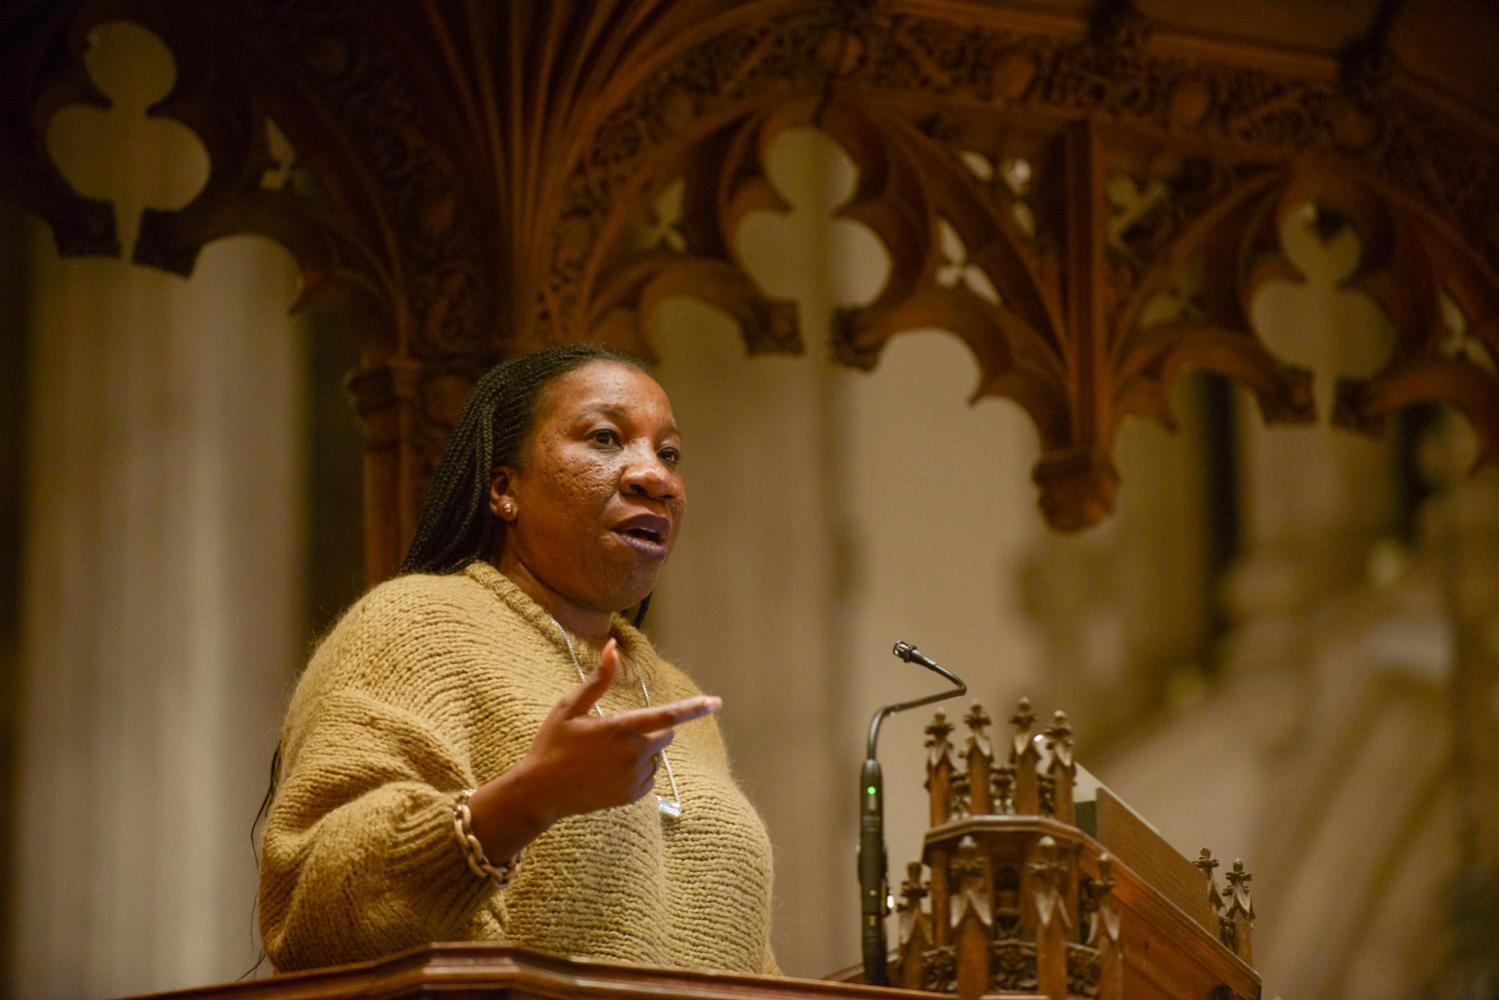 Tarana Burke, the founder of the #MeToo movement, discusses female empowerment and preventing sexual harassment at Calvary Episcopal Church Tuesday night. (Photo by Christian Snyder | Multimedia Editor)